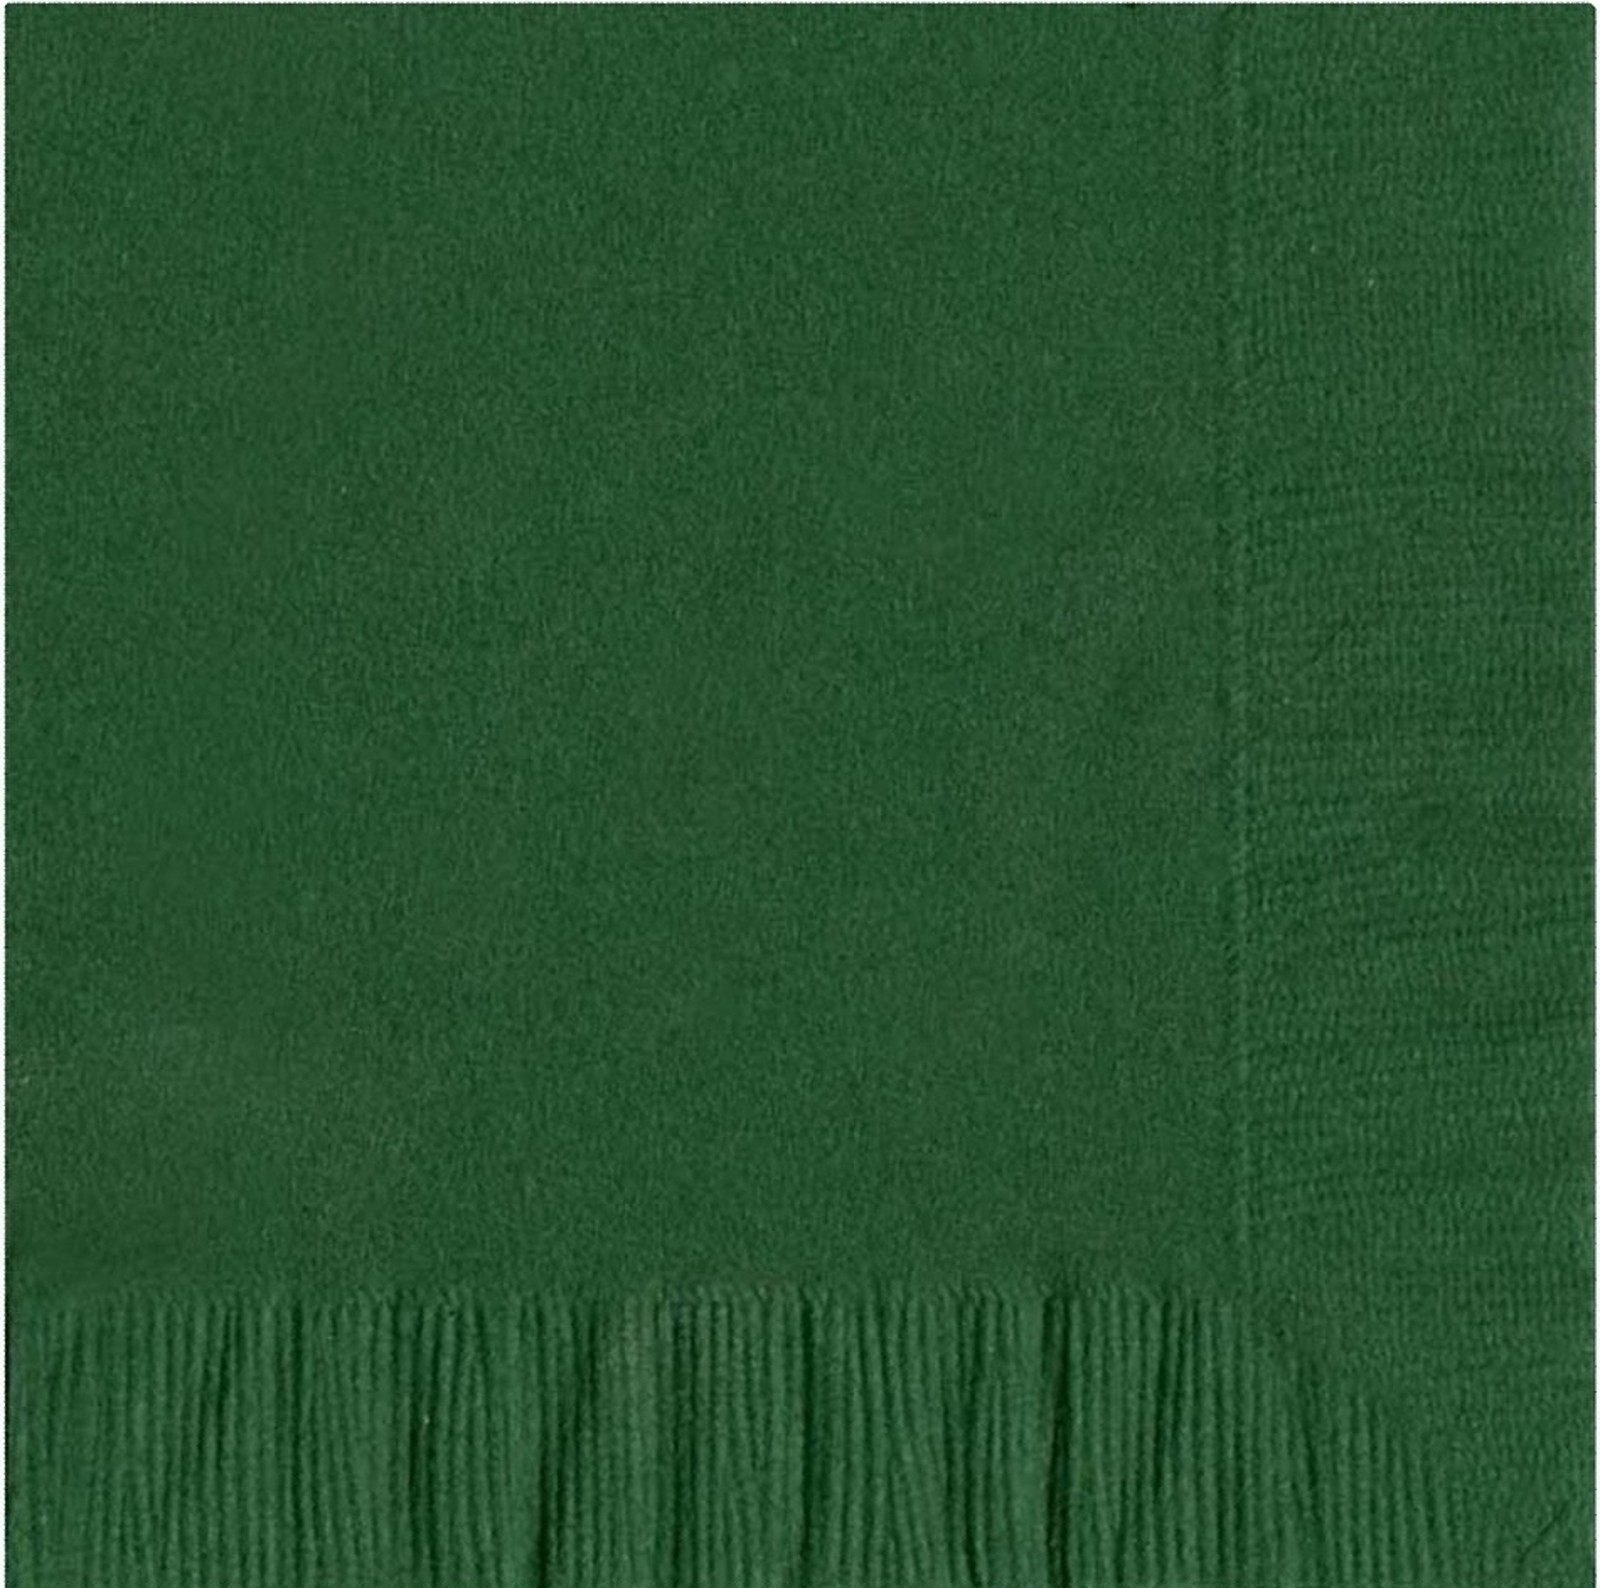 50 Plain Solid Colors Luncheon Dinner Napkins Paper - Hunter Green